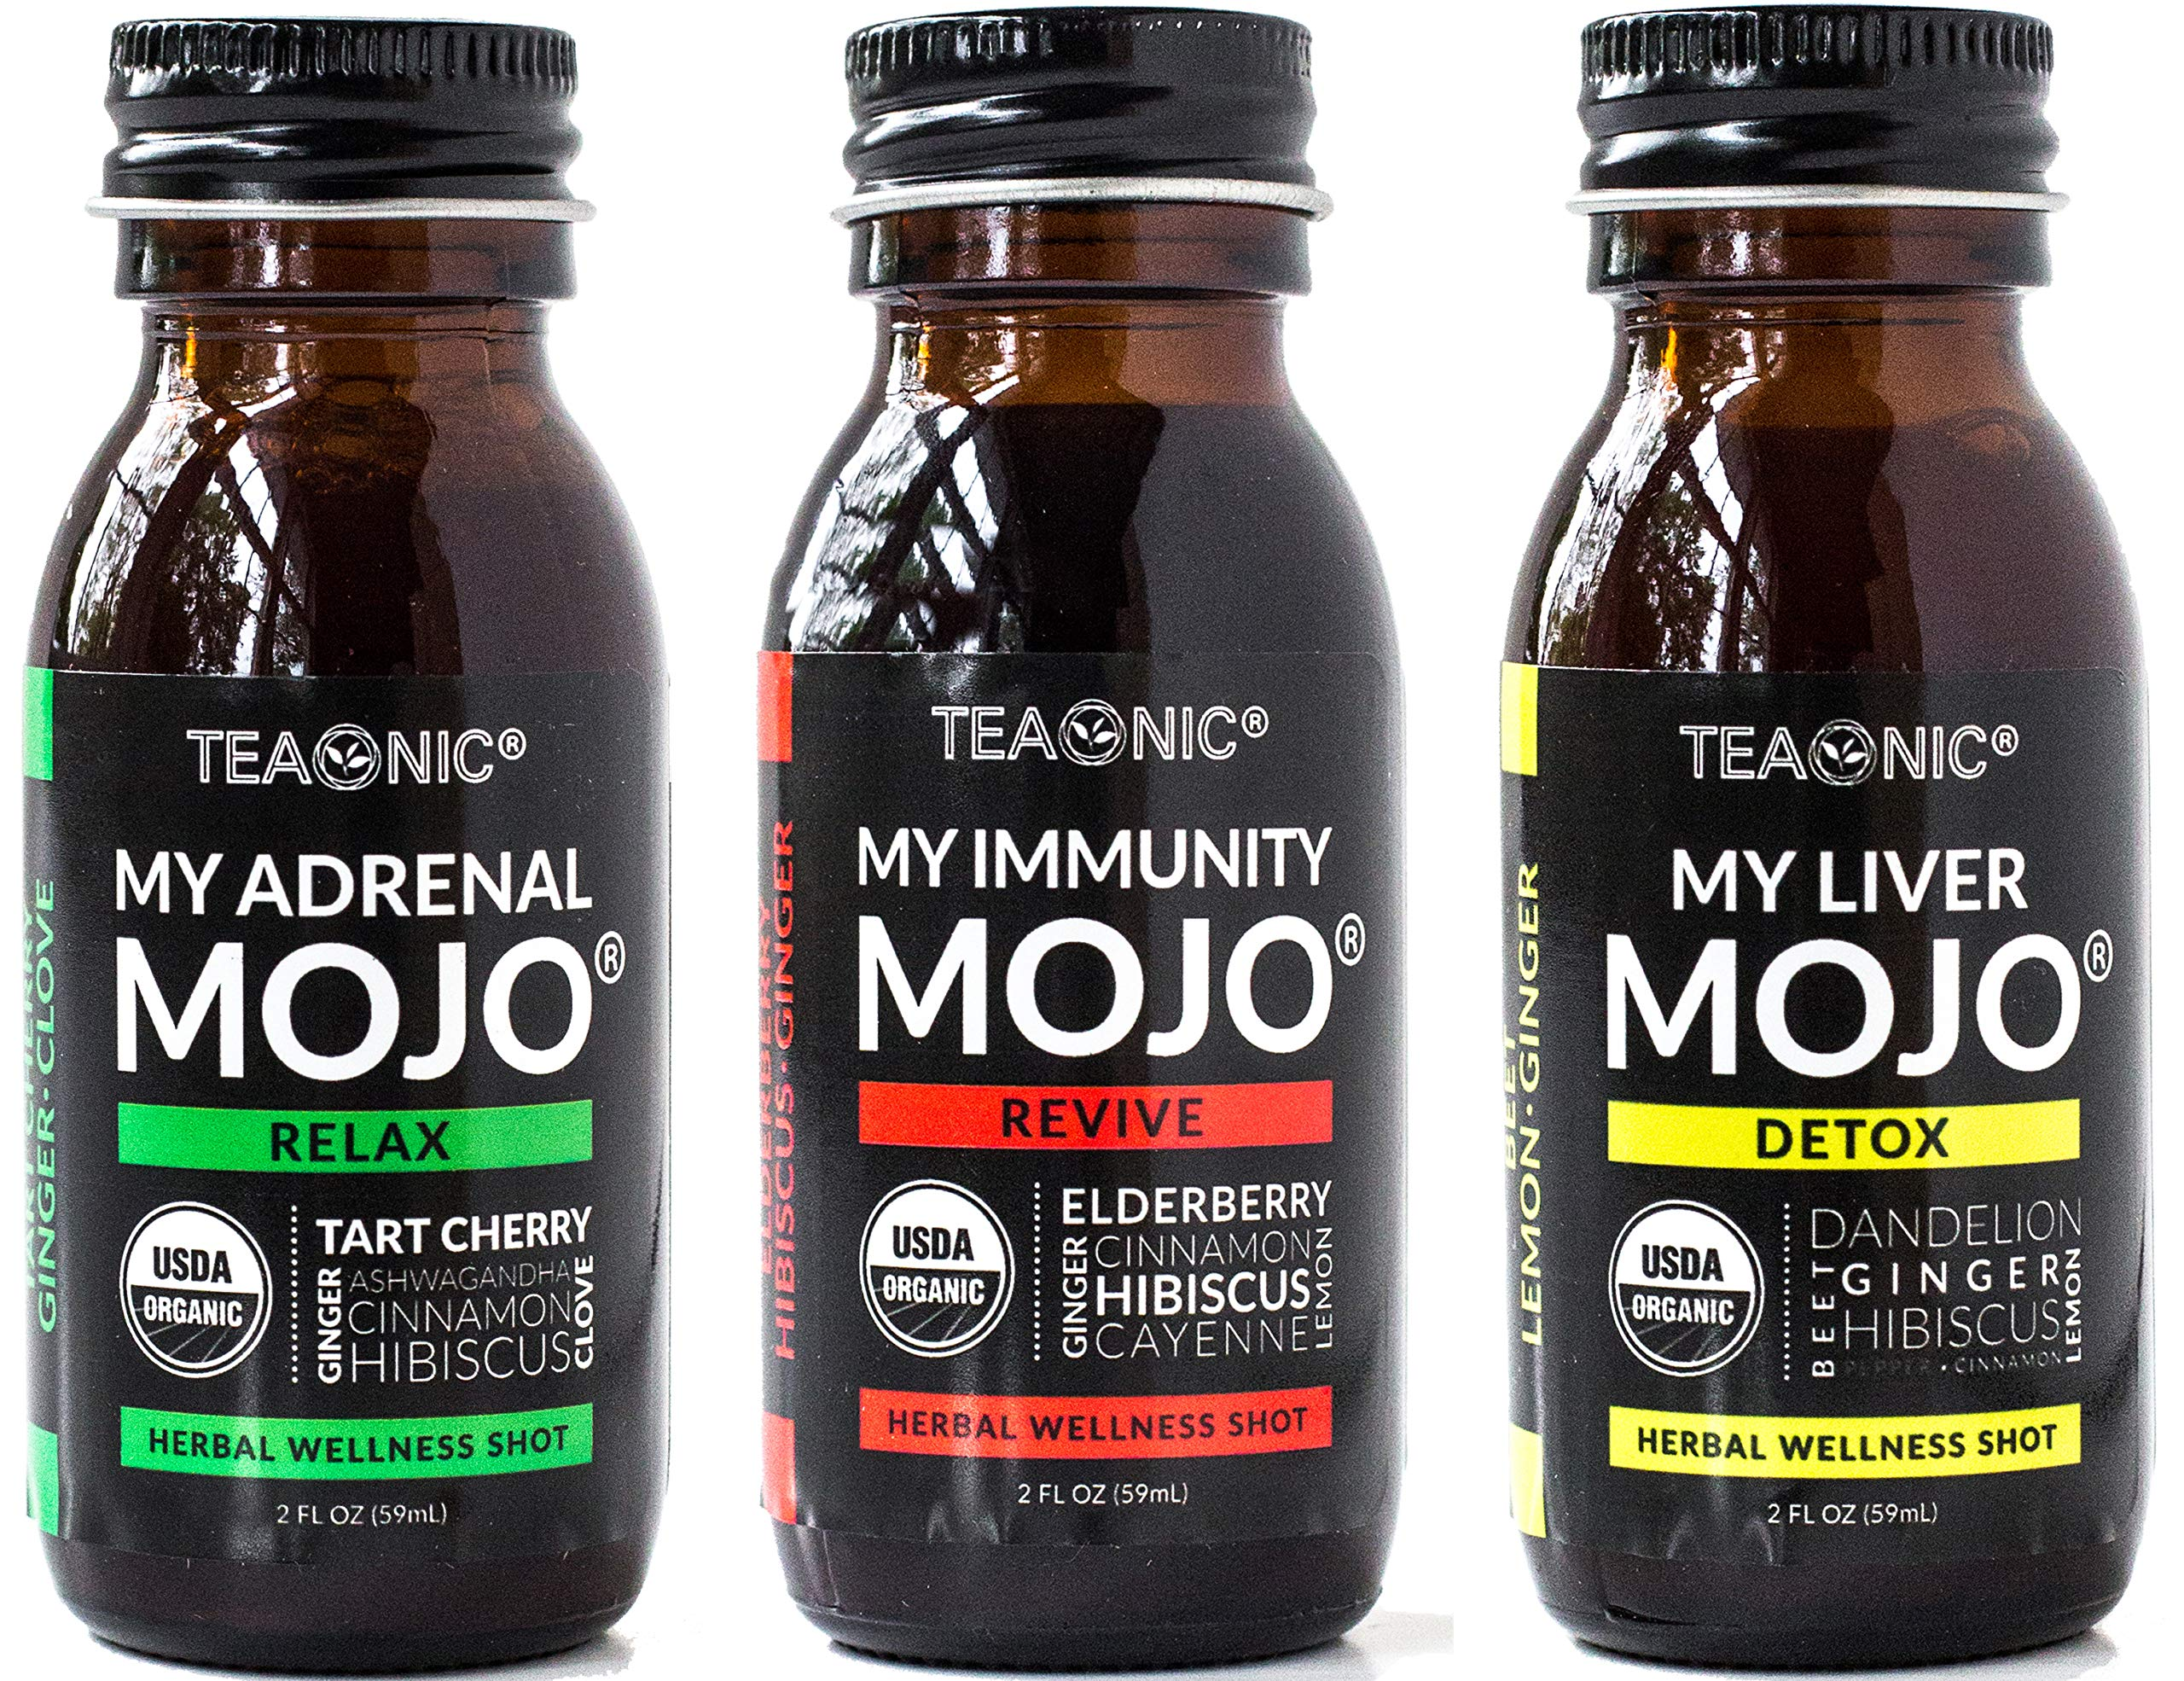 Teaonic Herbal Mojo, Organic, Natural, Caffeine-Free, Unsweetened Herbal Wellness Shot, Adrenal, Liver, Immunity 2oz (Pack of 12)